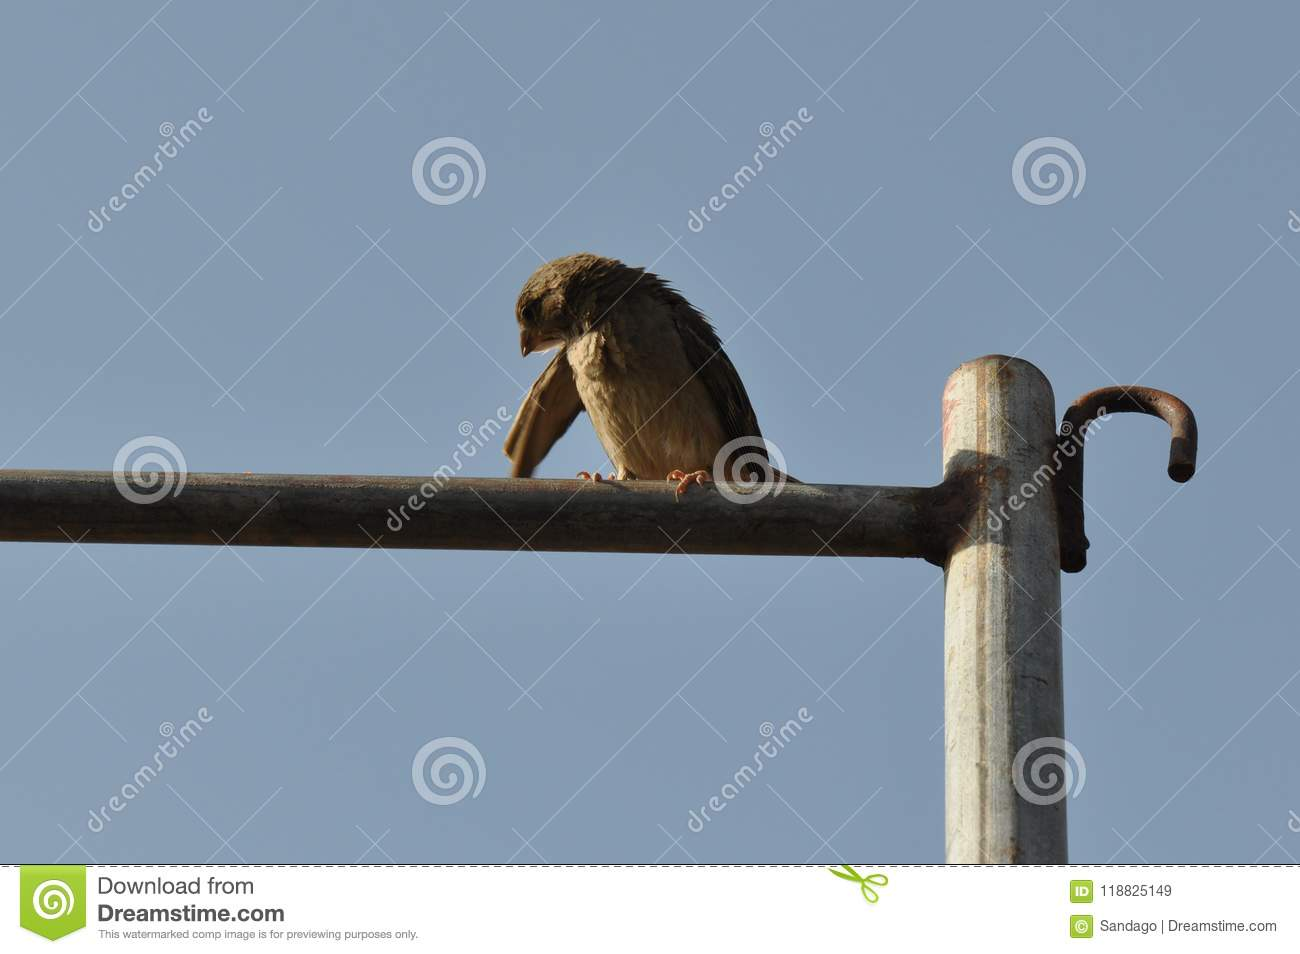 Sparrow perched on rusty wire fence